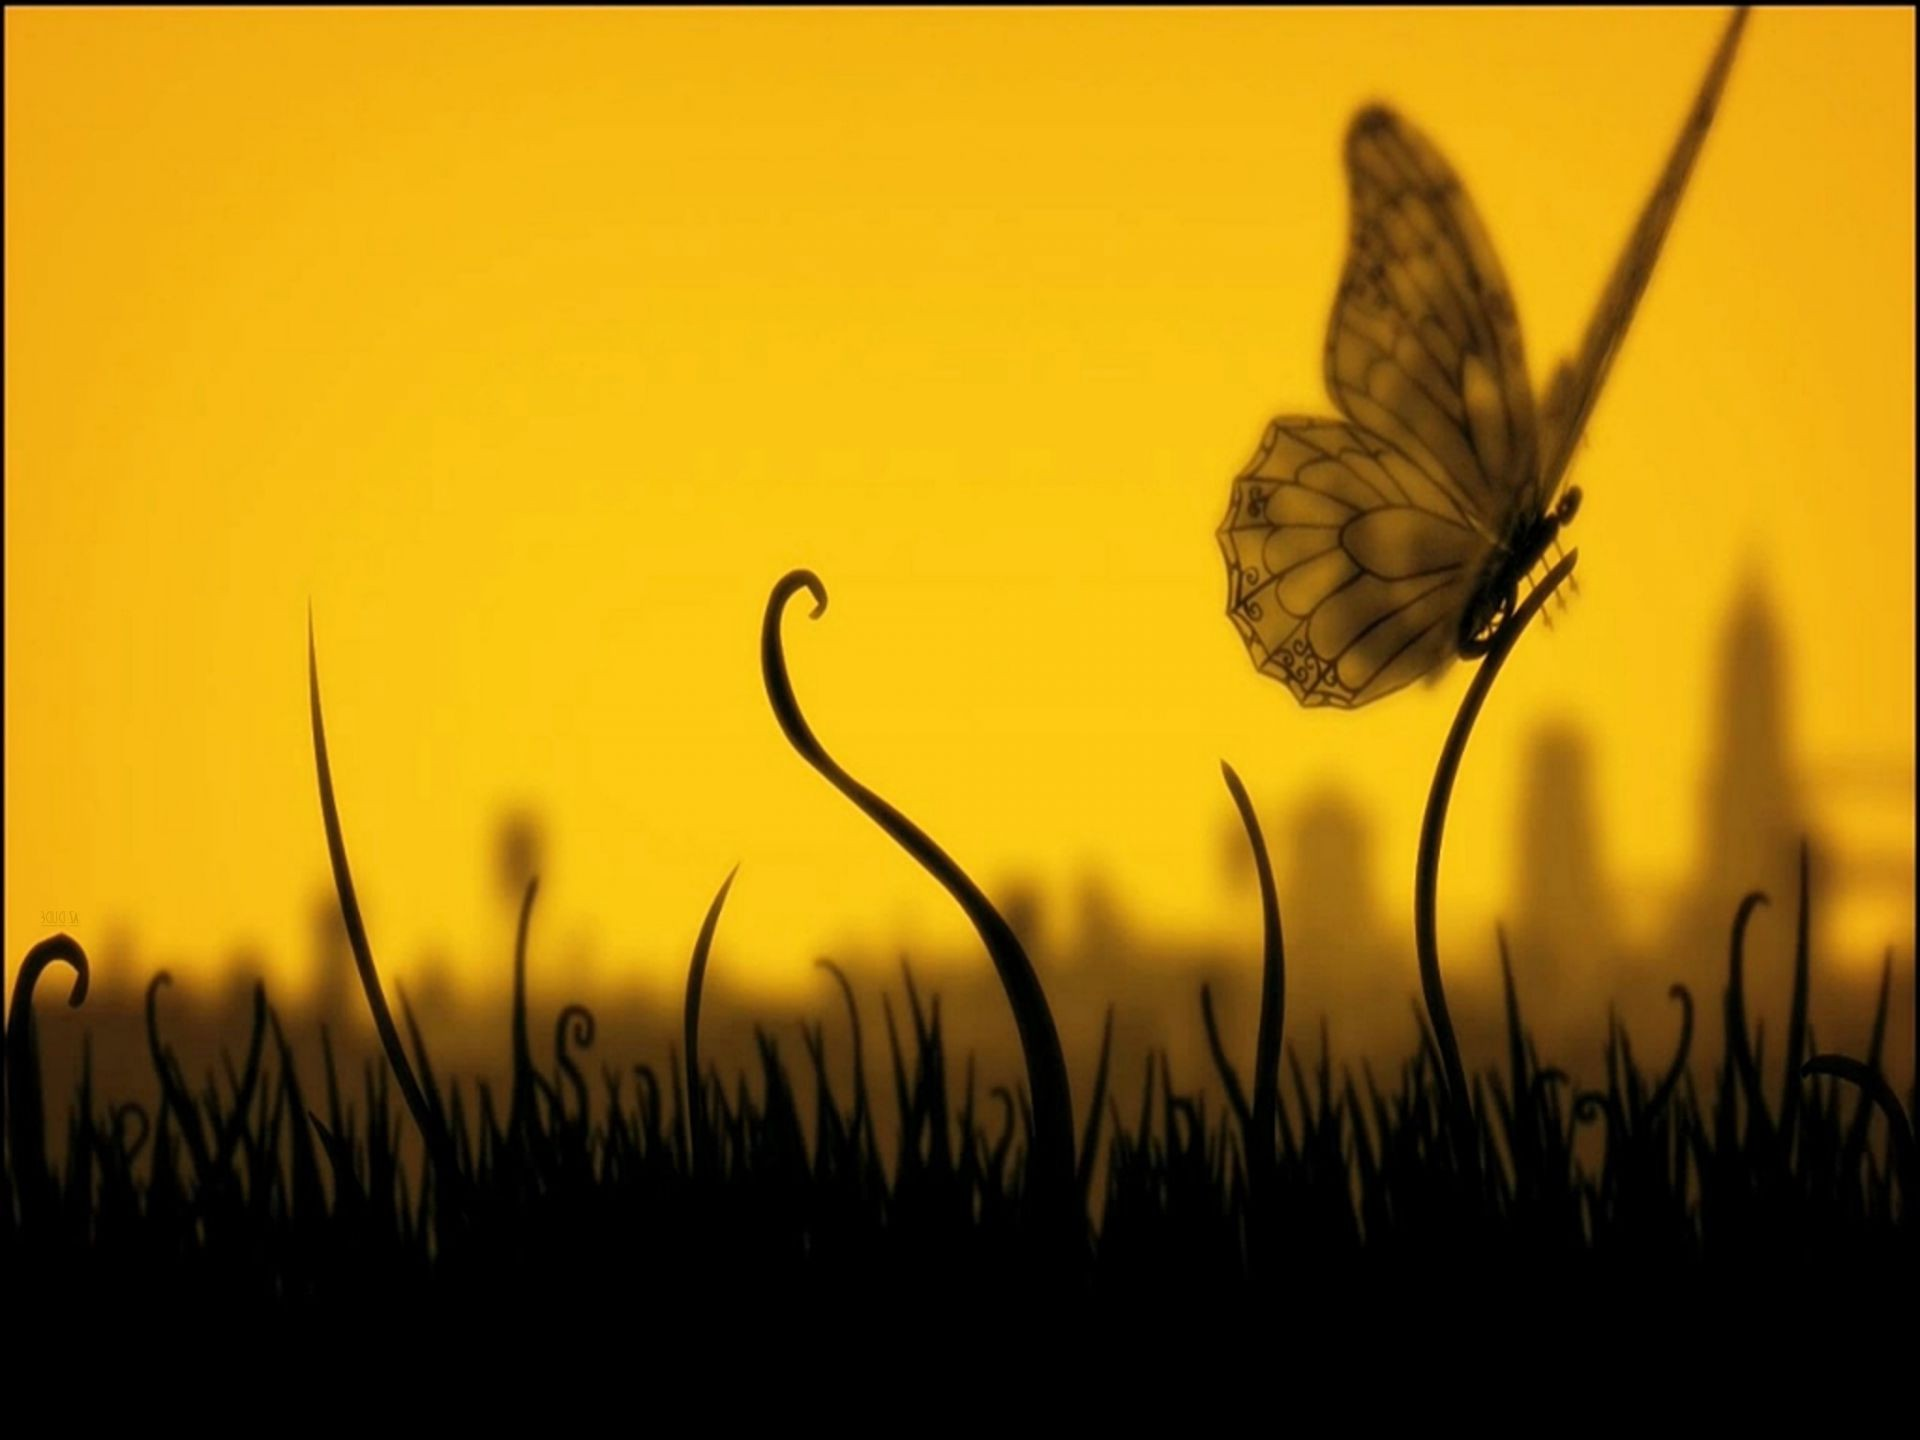 animals butterfly insect nature fly silhouette sun wing grass summer field animal sunset flower light garden flora color desktop wildlife hayfield